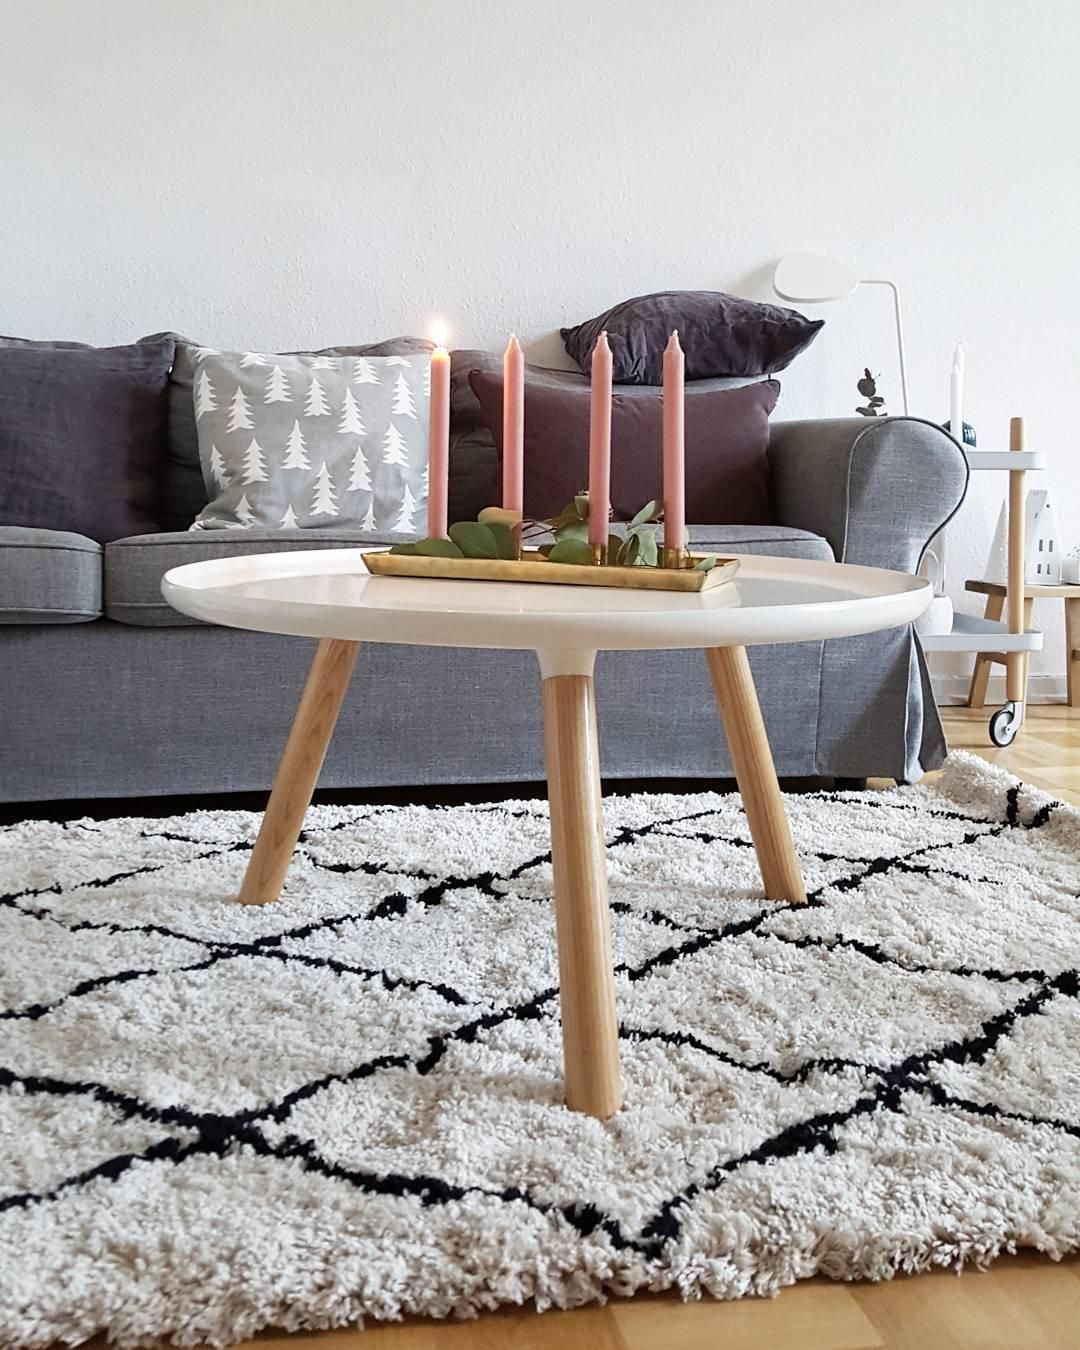 Handgetufteter Teppich Naima   Living rooms, Interiors and Room